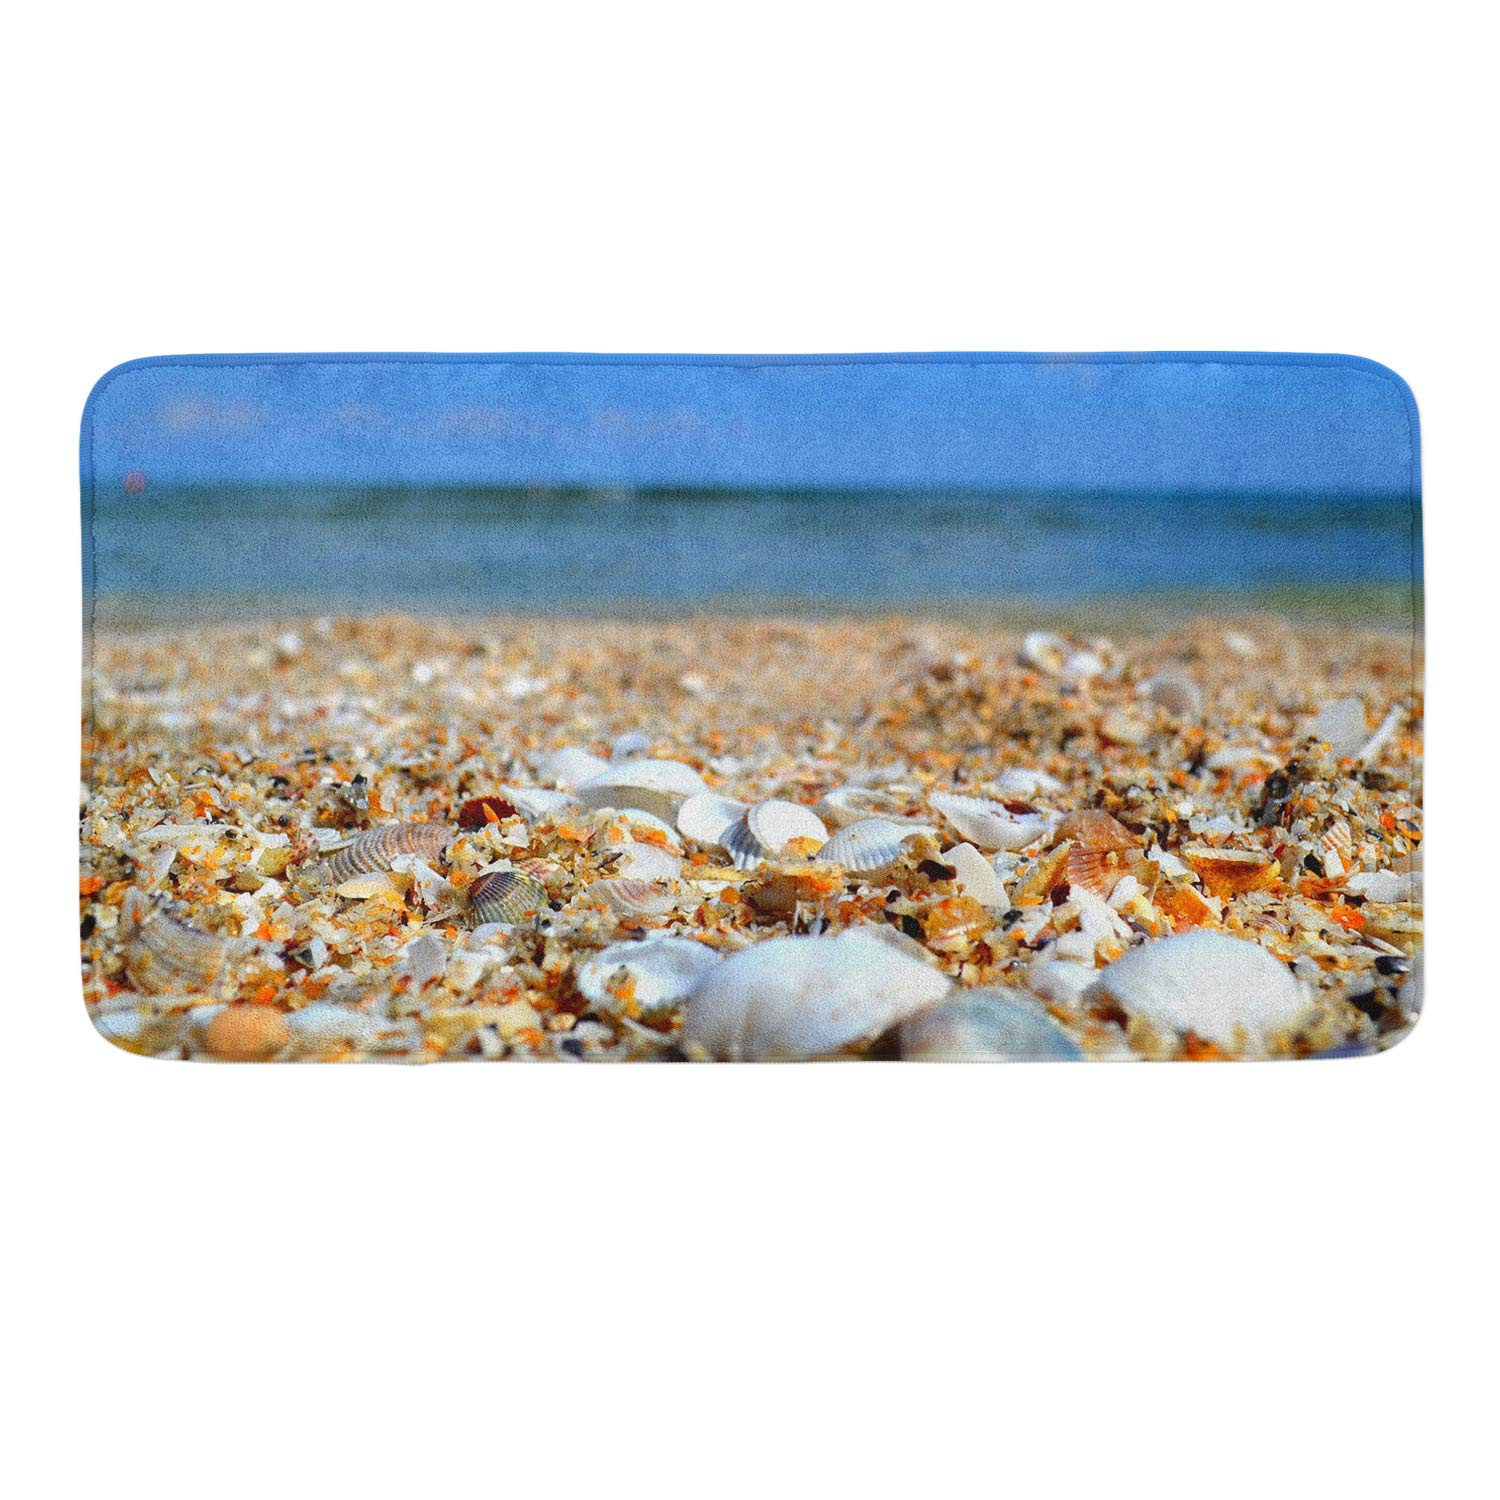 CIGOCI Non-Slip Memory Foam Bath Rugs, 3D Print Starfish Conch Seashell - 18 x 36 Inch, Extra Absorbent,Soft,Duarable and Quick-Dry Shaggy Rugs